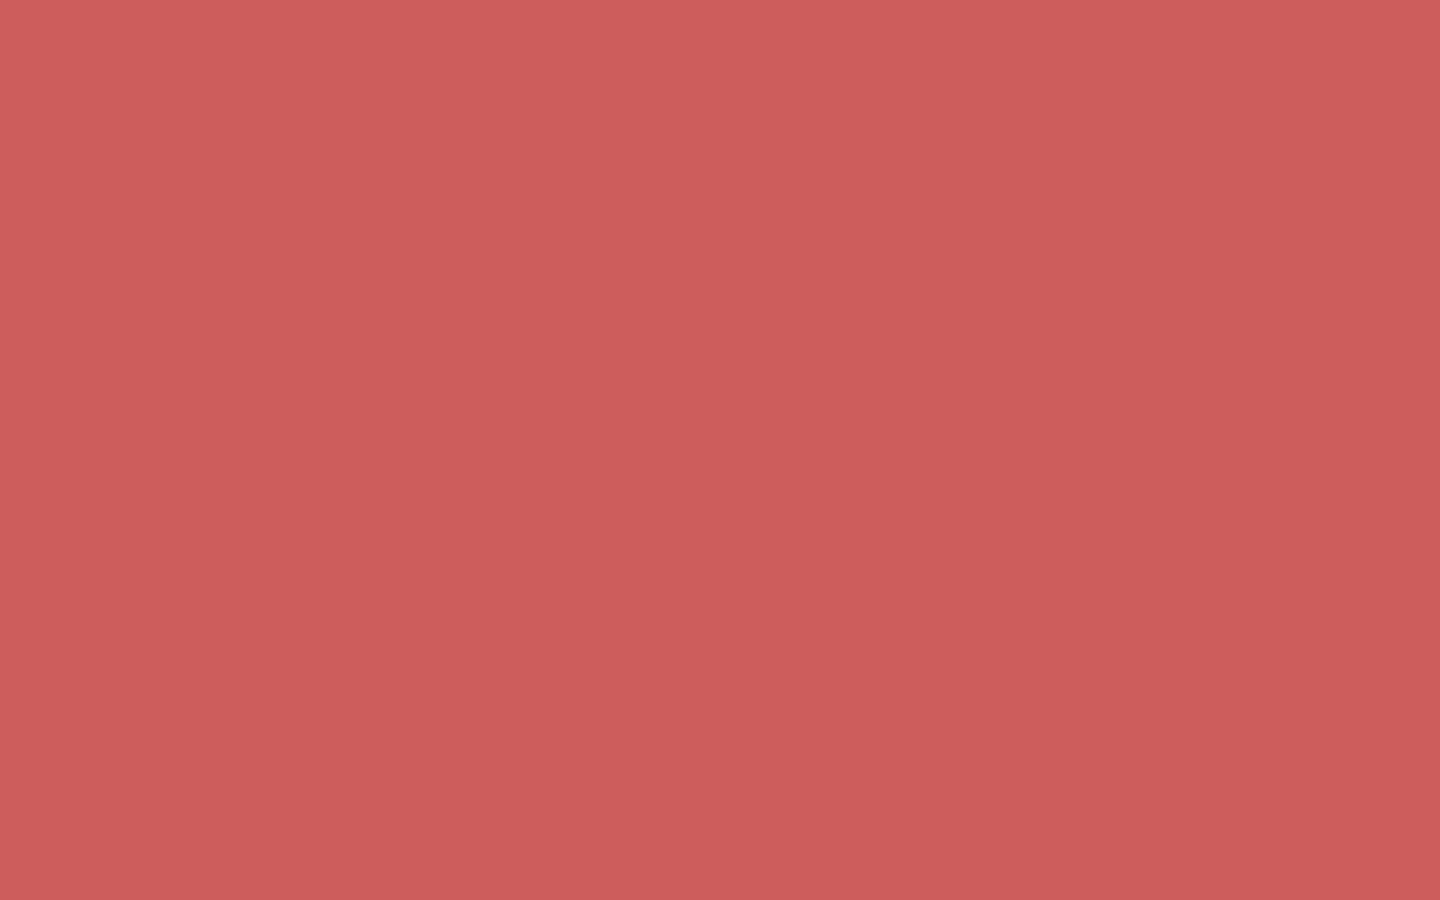 1440x900 Indian Red Solid Color Background